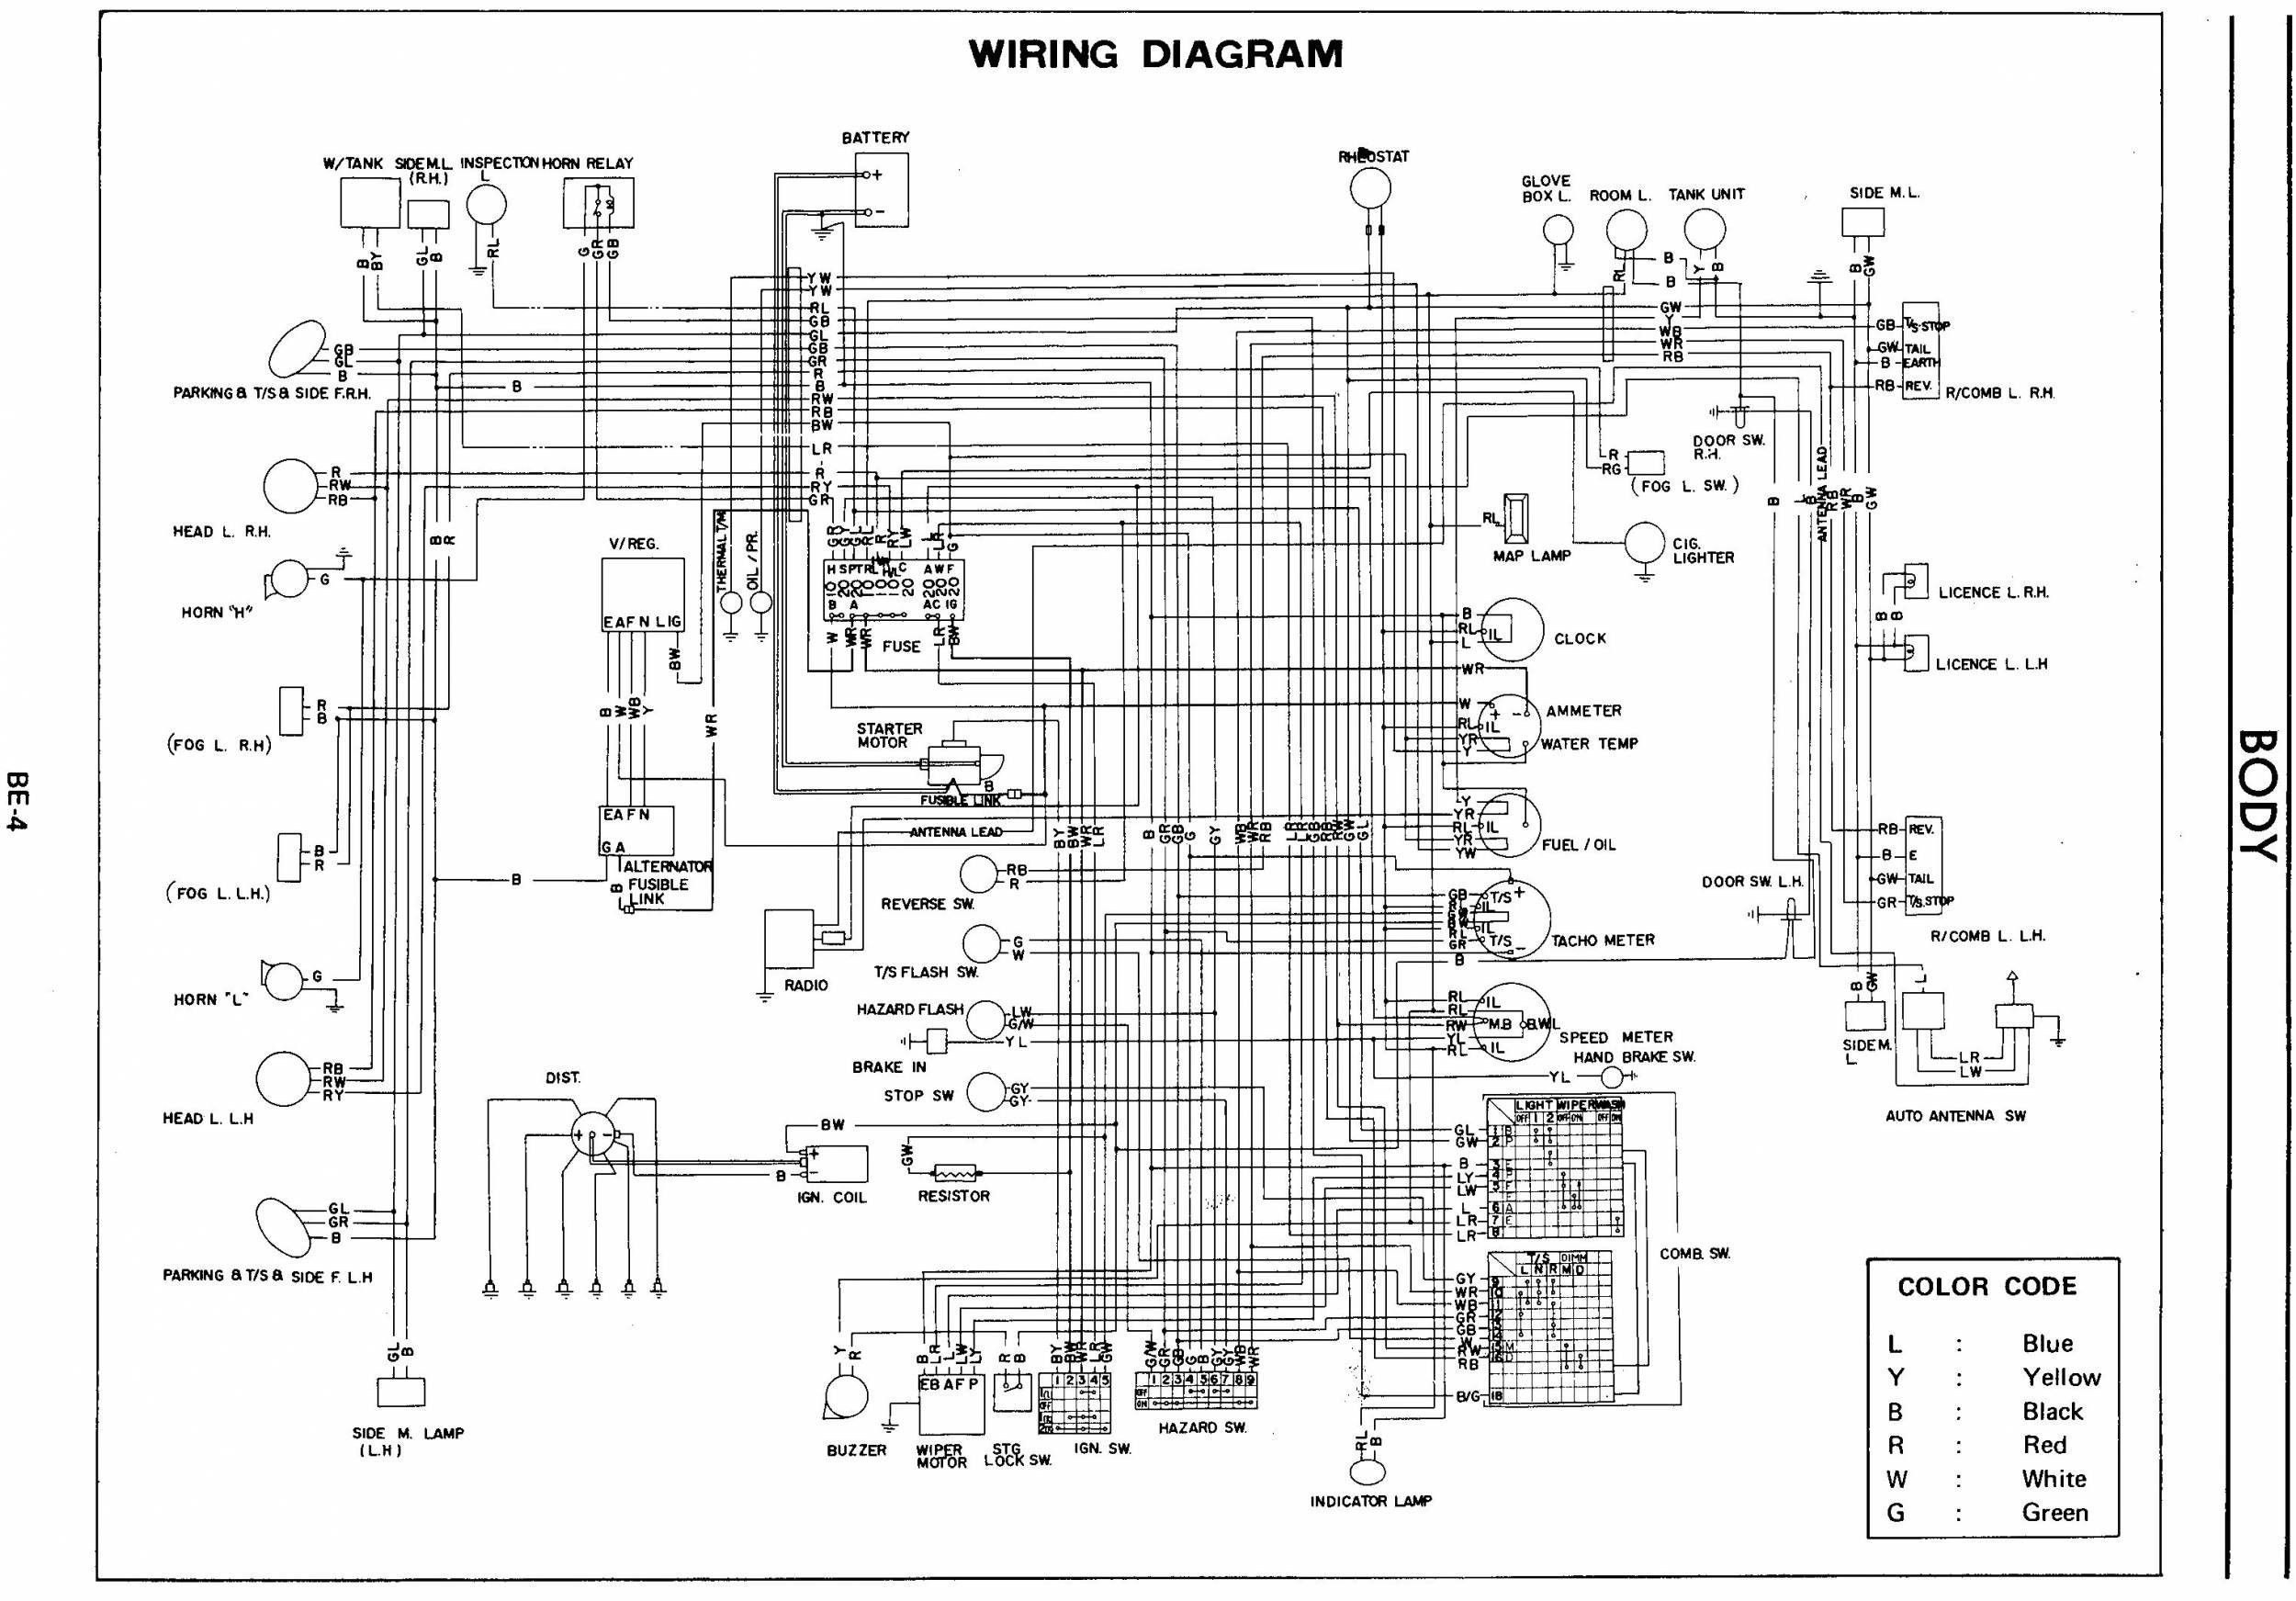 Mercedes W203 Wiring Diagram Circuit Connection Diagram \u2022 Geo Radio  Wiring Mercedes W203 Radio Wiring